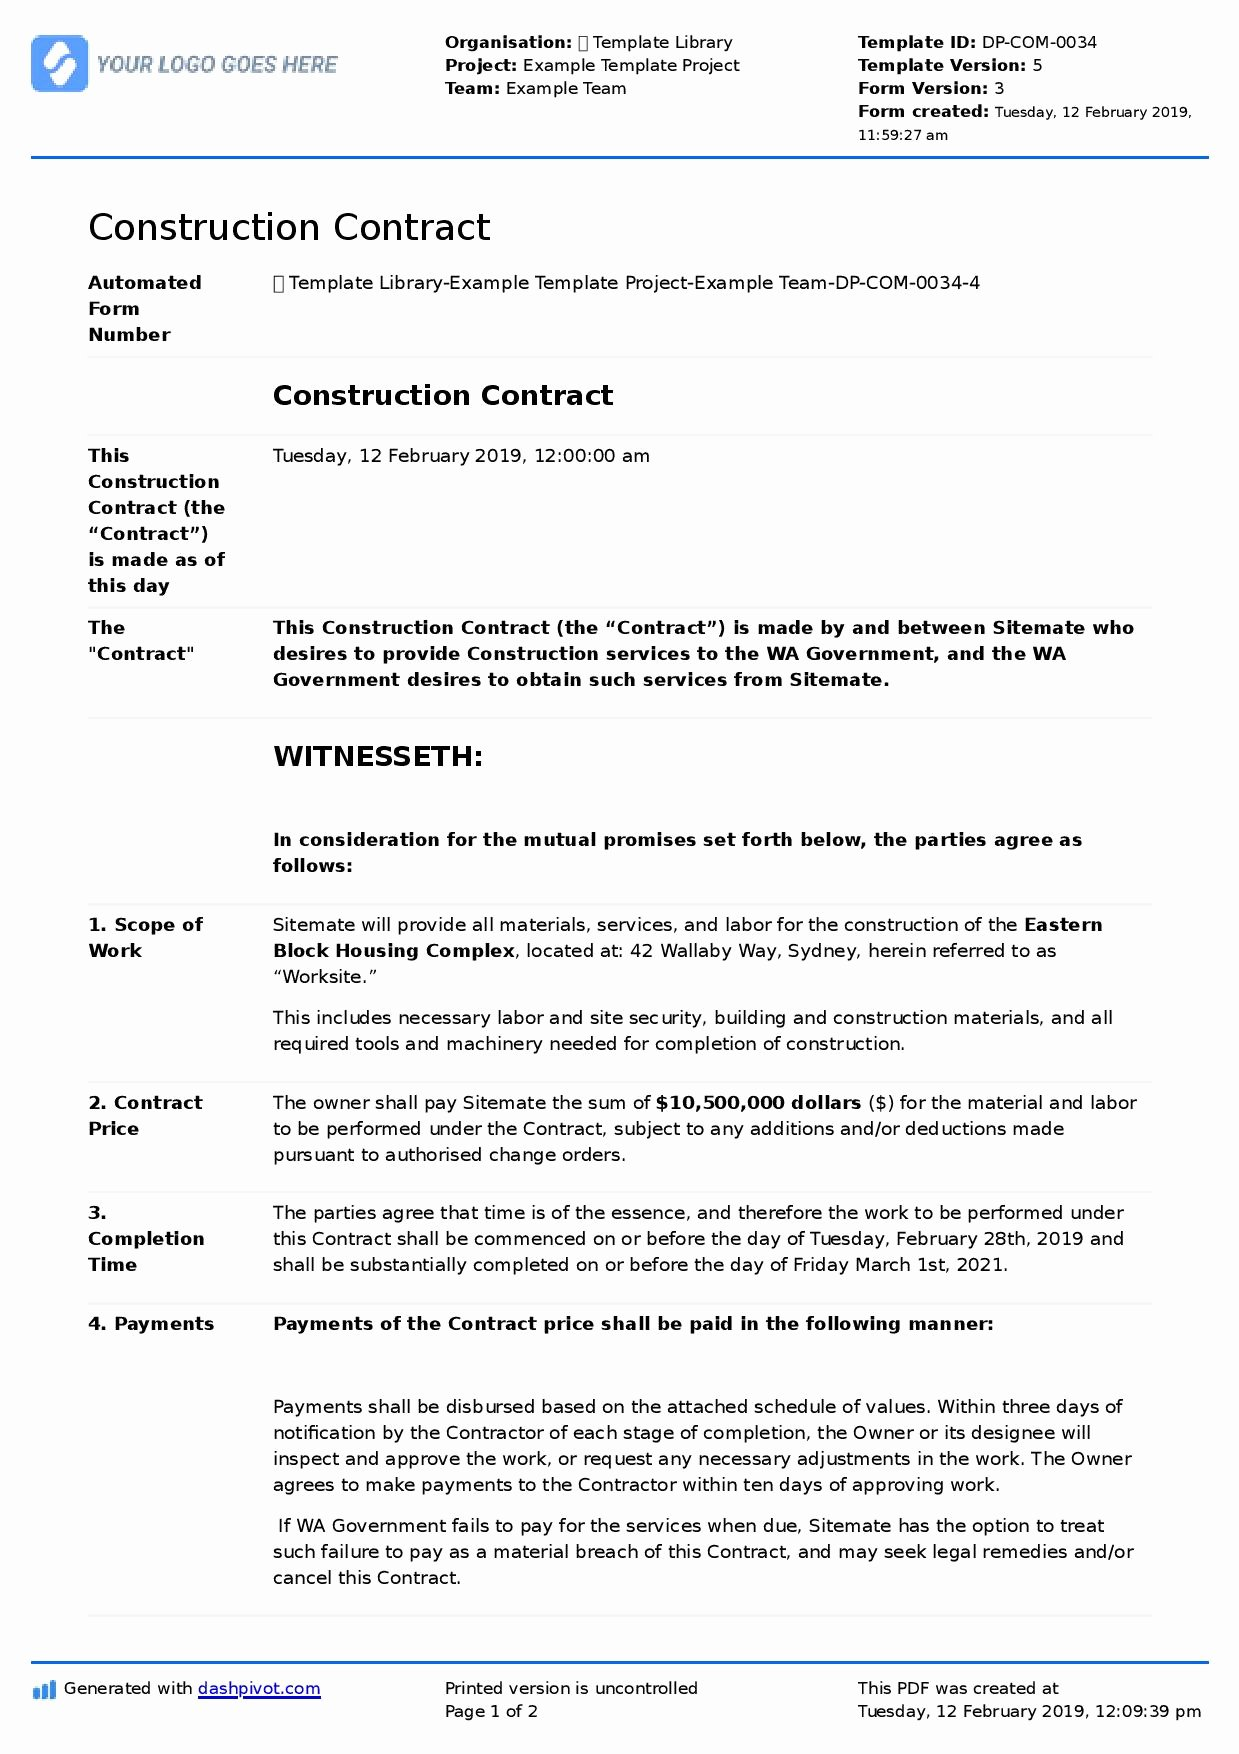 Free Roofing Contract Template Luxury Construction Contract Sample Better Than Word and Pdf